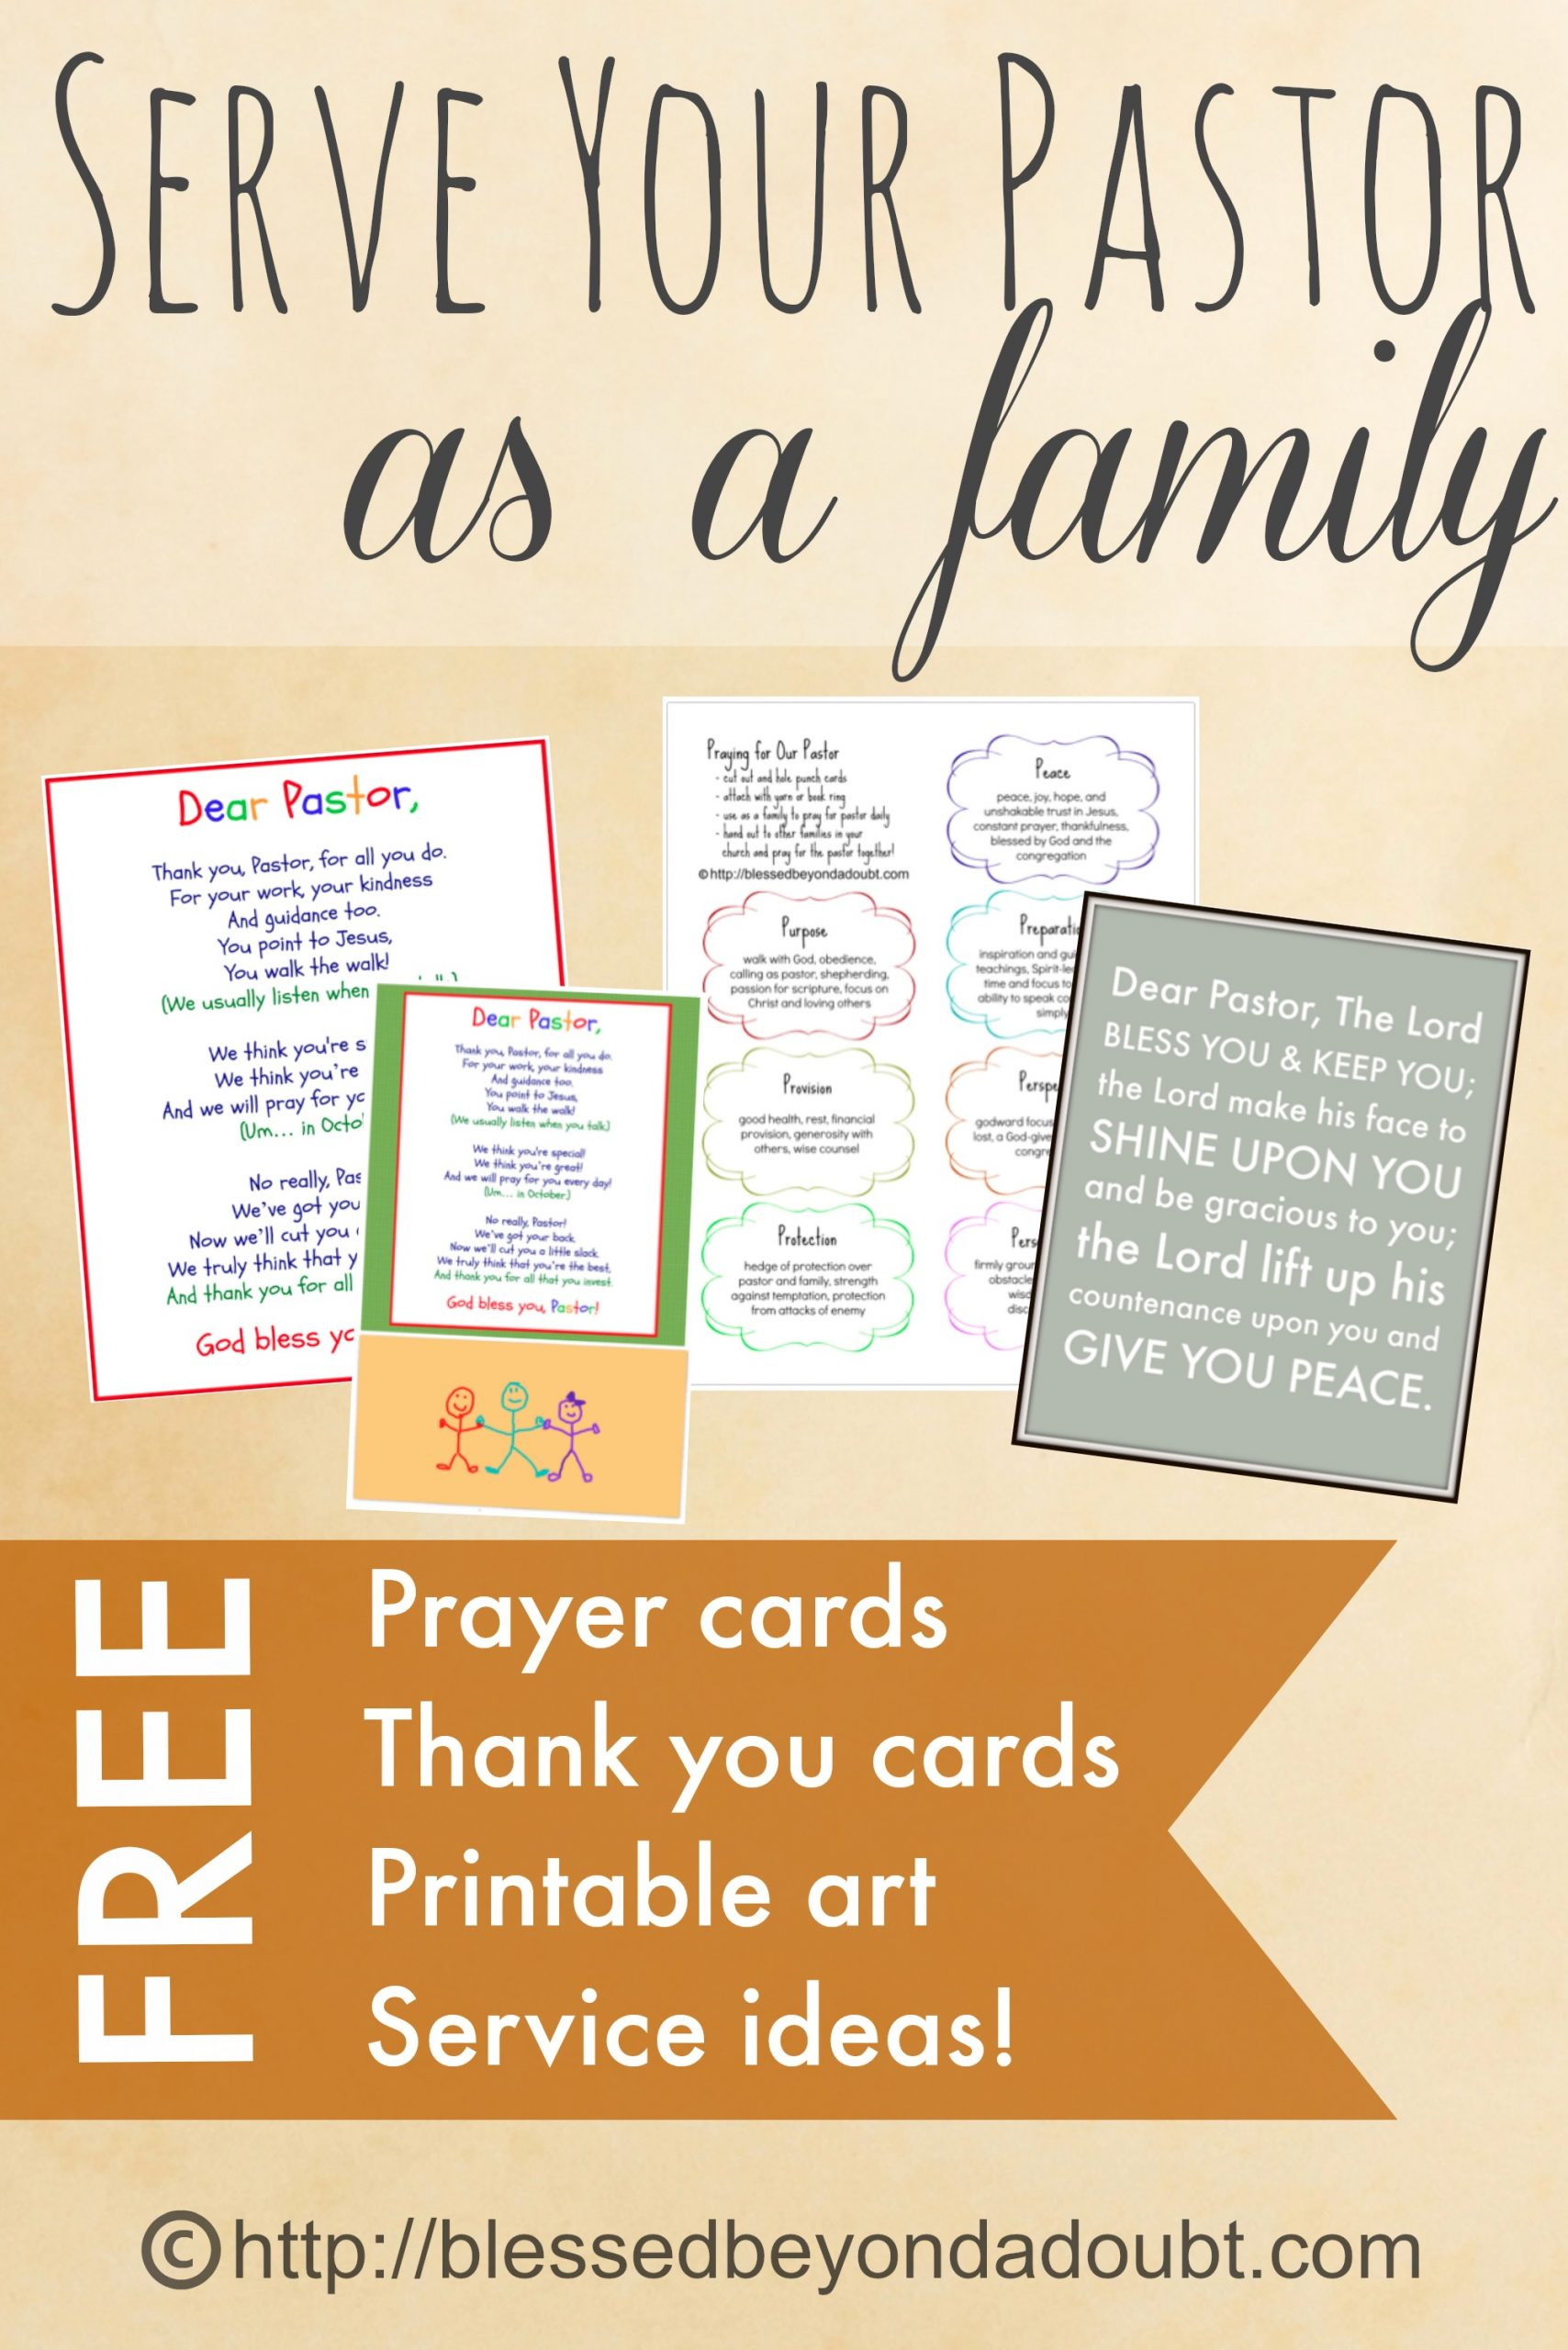 Printables and ideas to help your family bless your pastor.